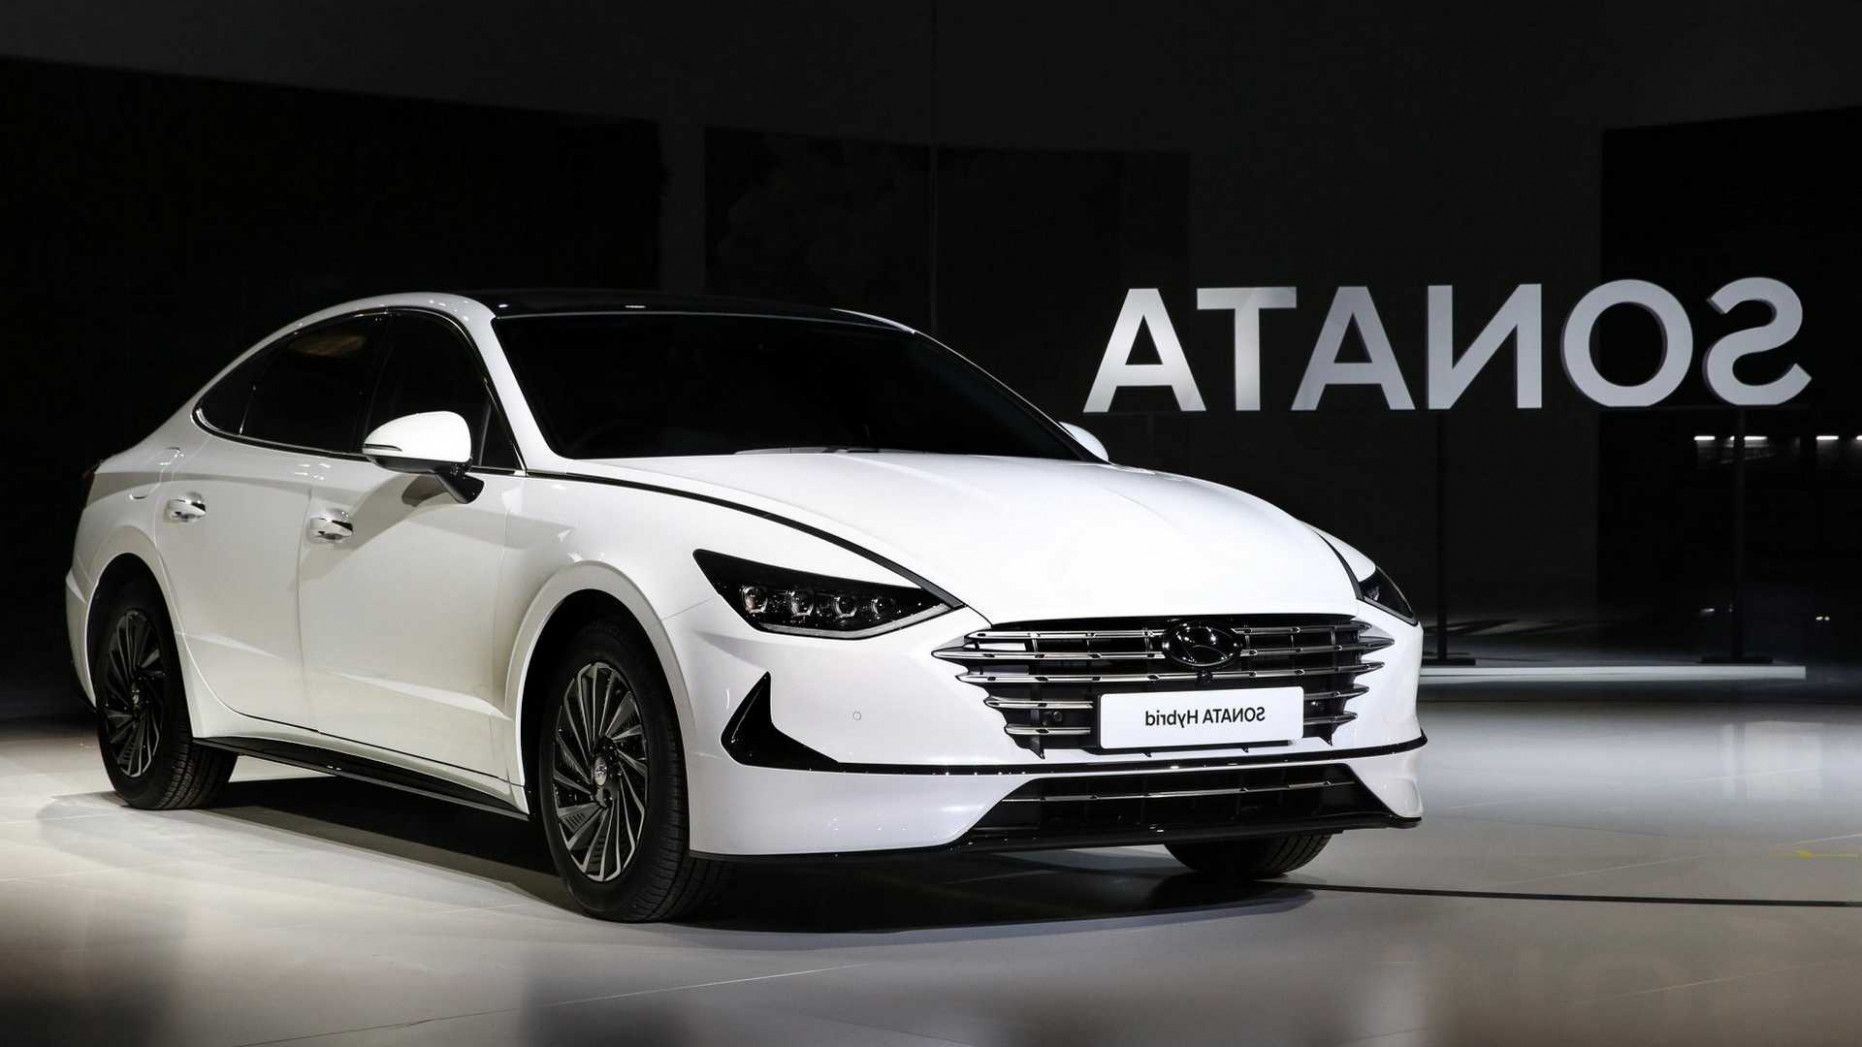 2020 Hyundai Elantra Essential [Video] in 2020 Hyundai